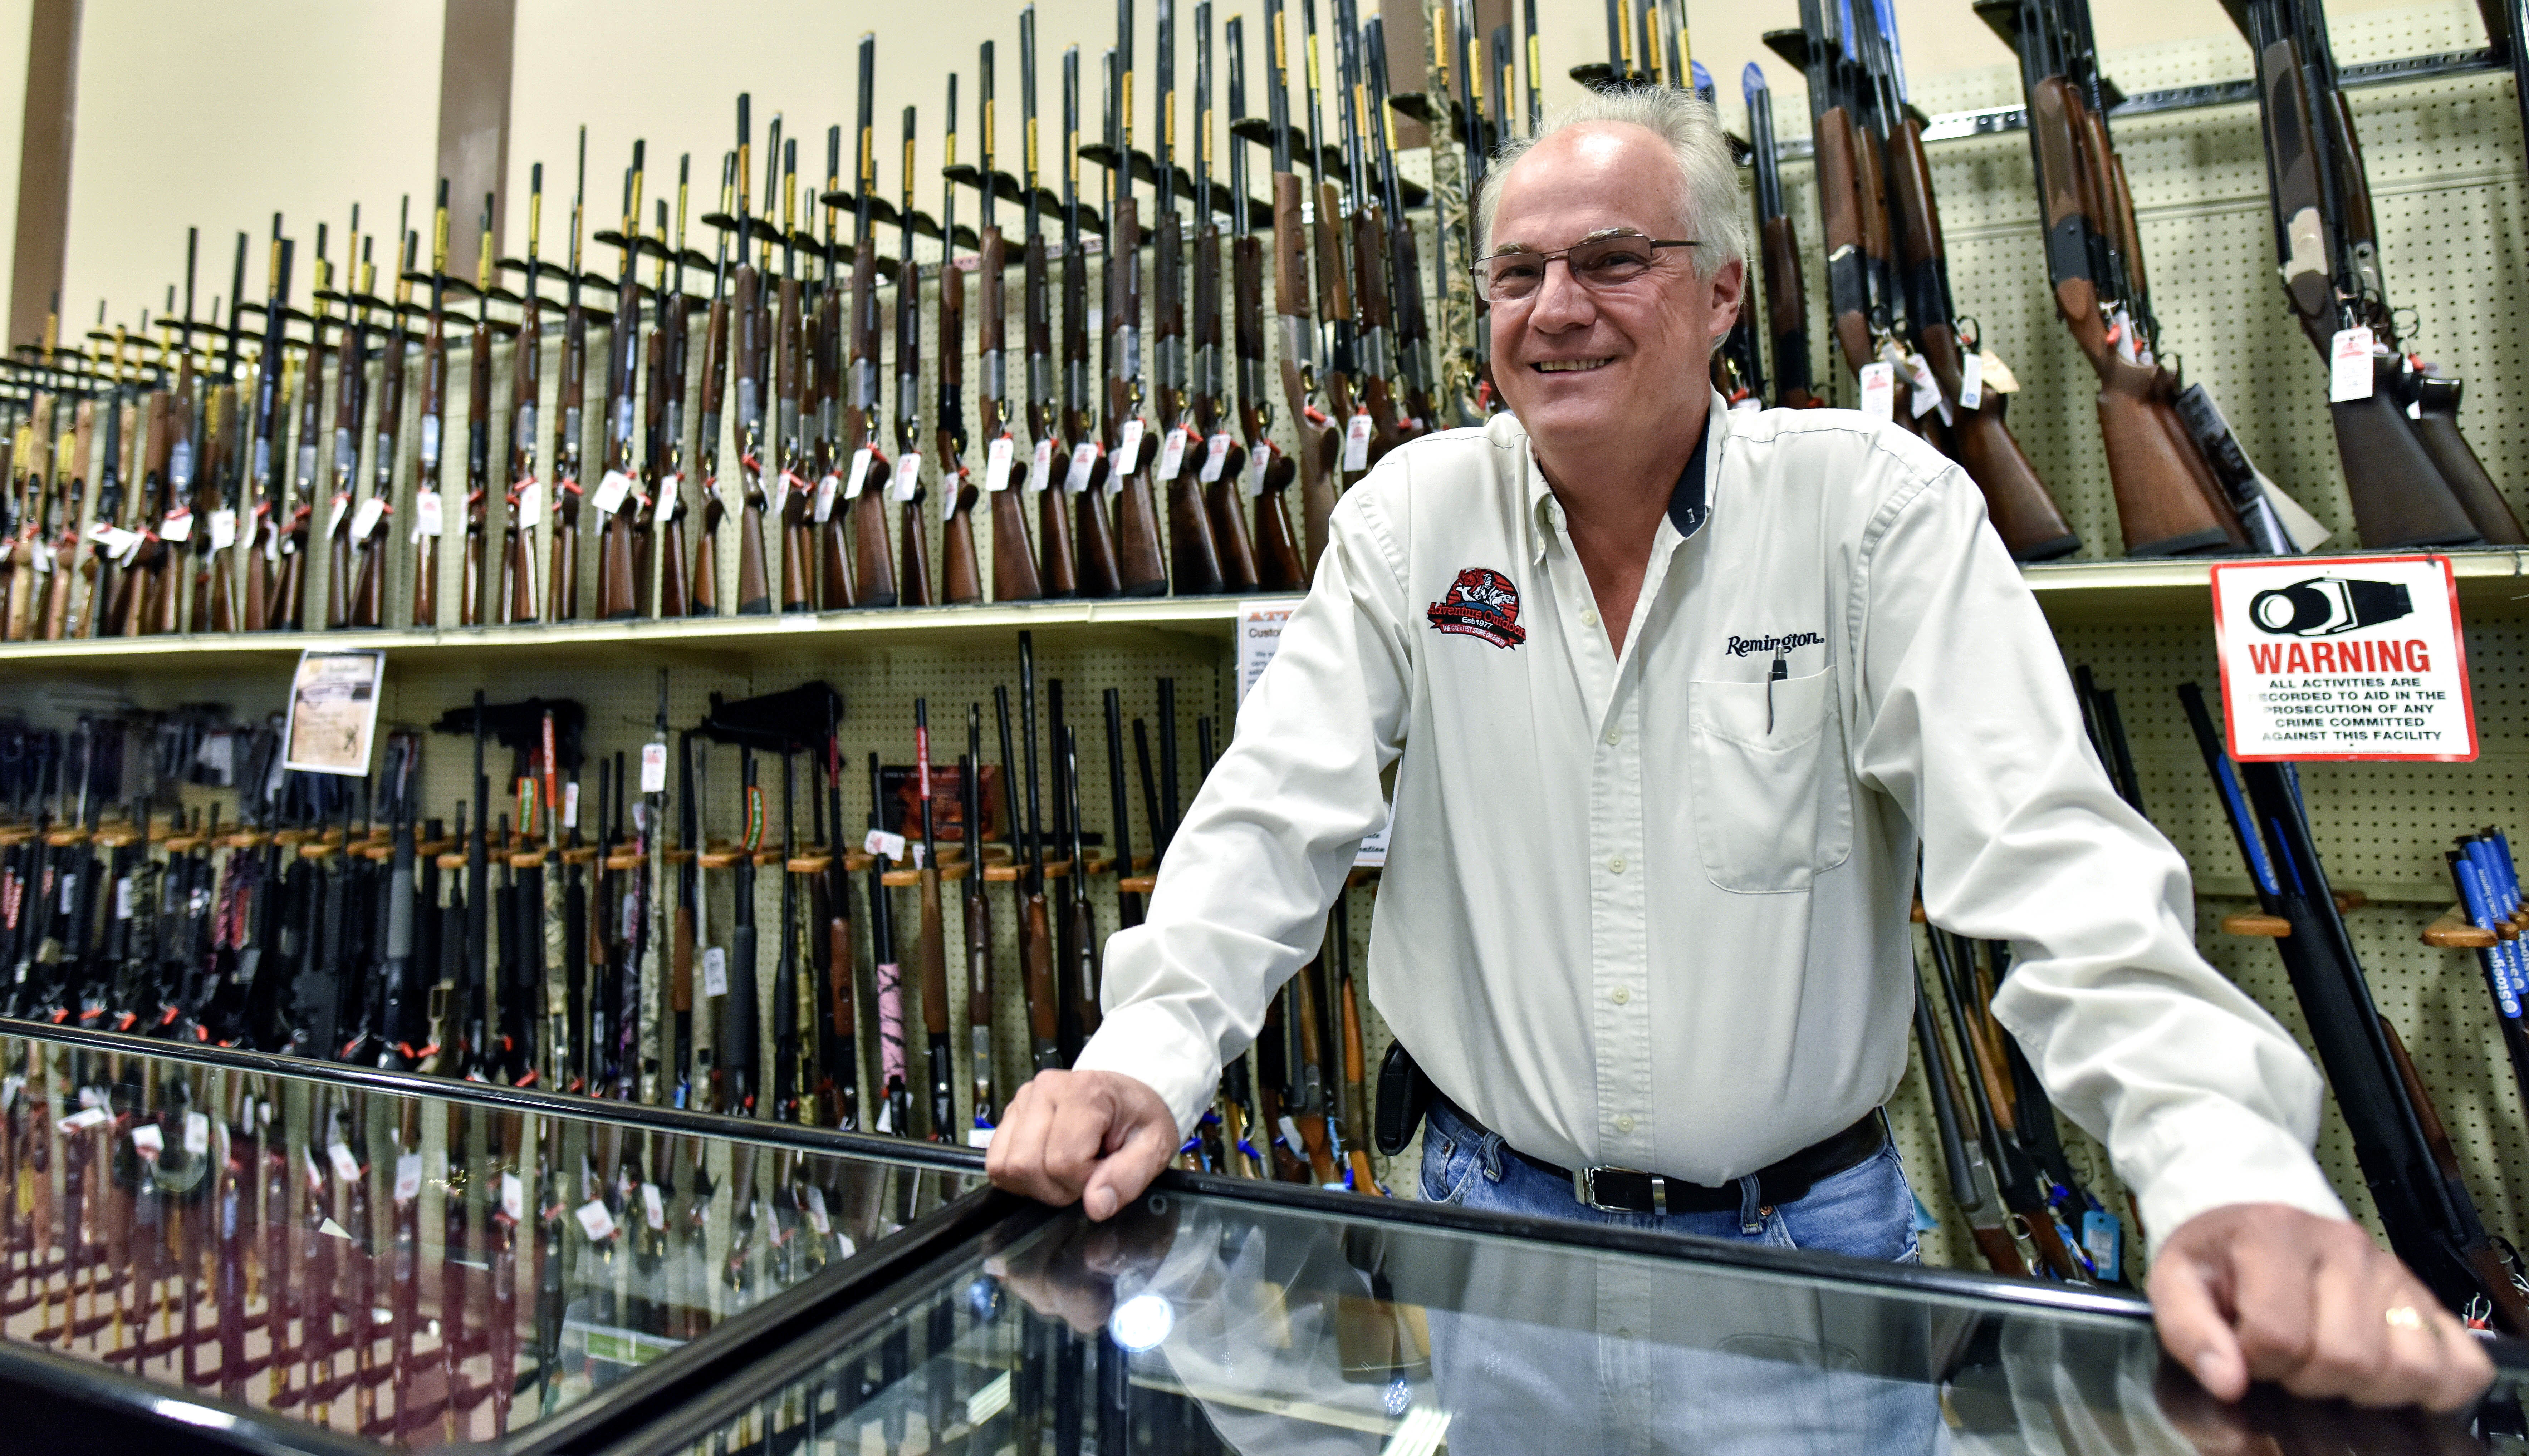 Jay Wallace, founder of Adventure Outdoors, poses for a portrait in Smyrna, Ga., on April 18, 2016. Wallace was among a group of gun dealers once sued by then-New York Mayor Michael Bloomberg over allegations of allowing illegal sales of firearms. (AP Photo/Lisa Marie Pane)